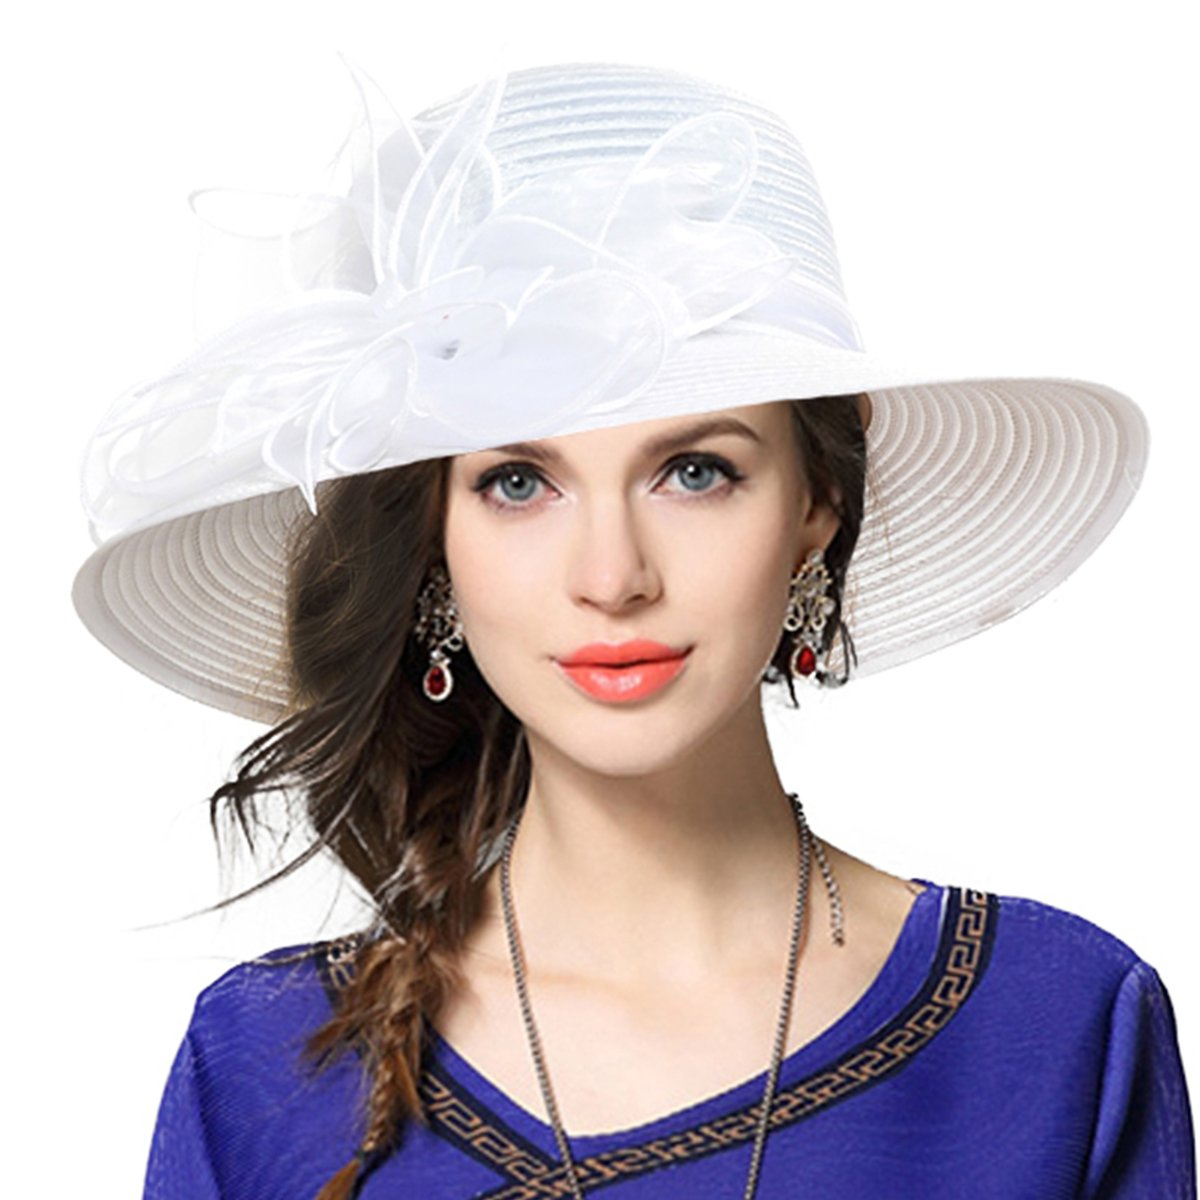 Leafwhite VECRY Kentucky Derby Dress Church Cloche Hat Sweet Cute Floral Bucket Hat